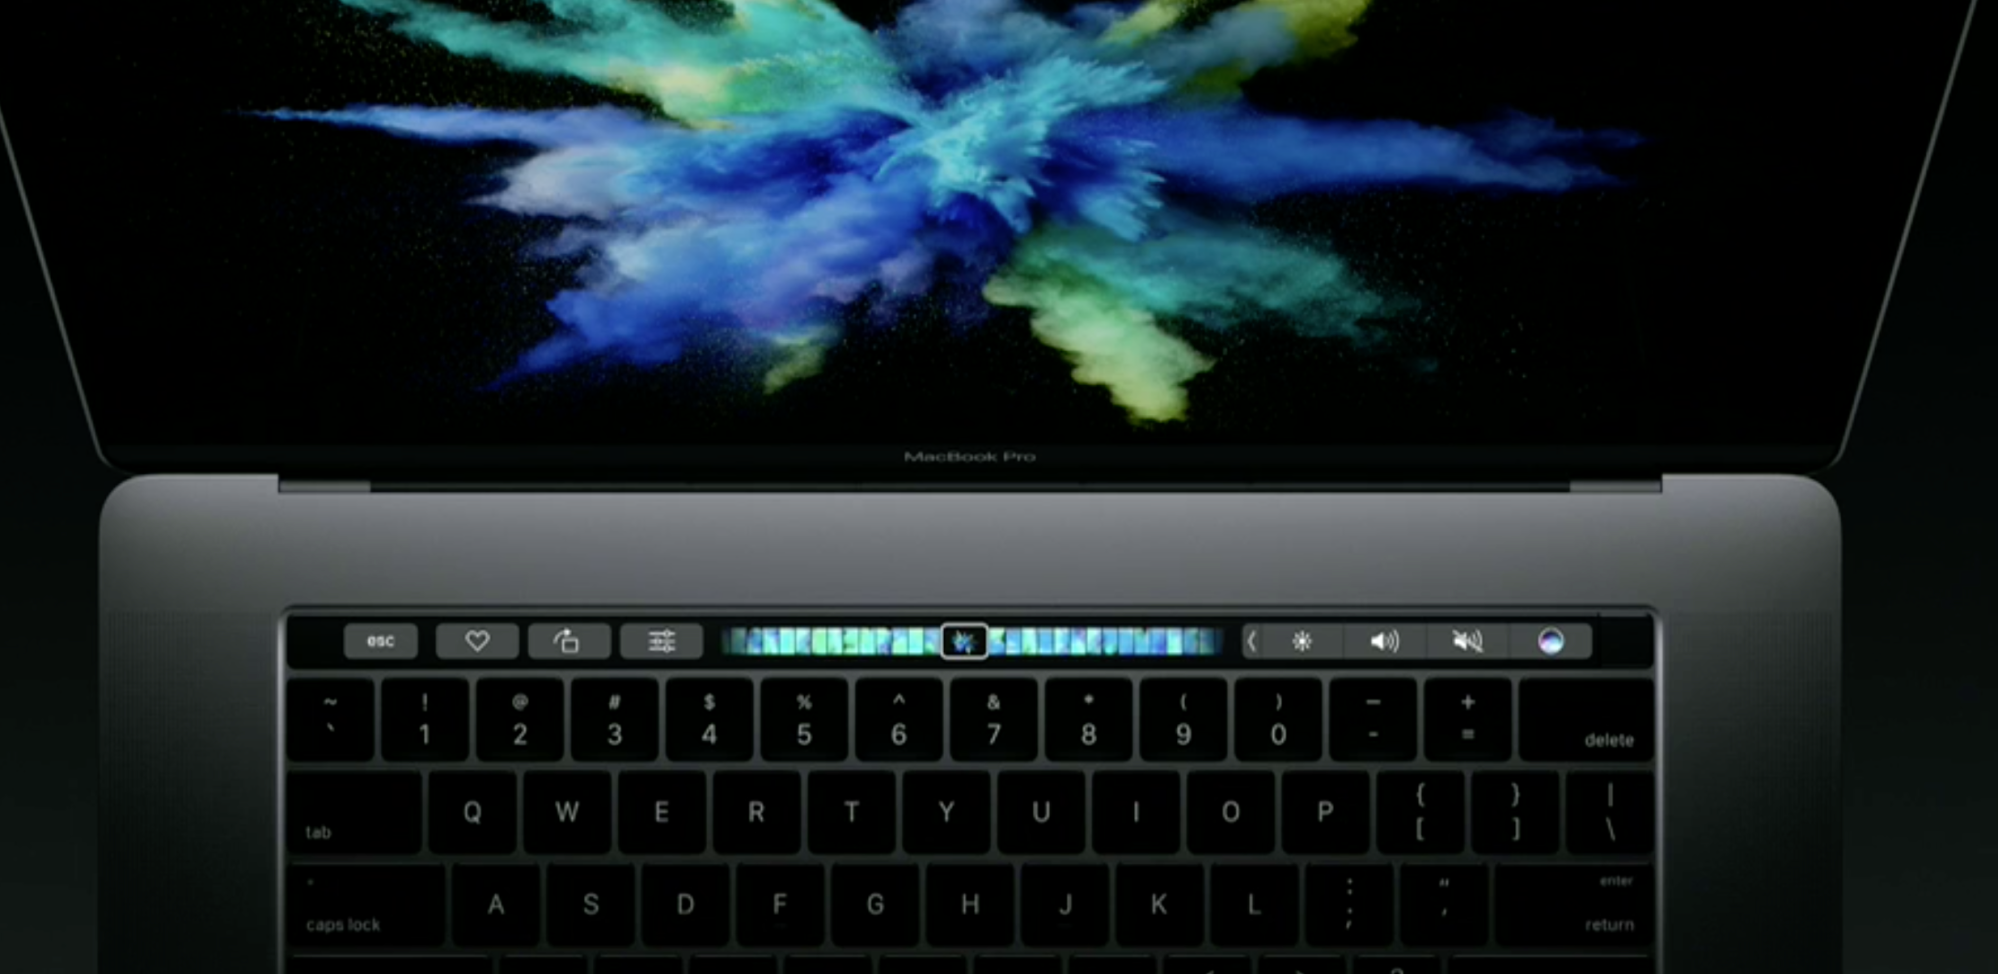 MacbookPro2016 1 - Apple announces a redesigned MacBook Pro with an all new Touch Bar